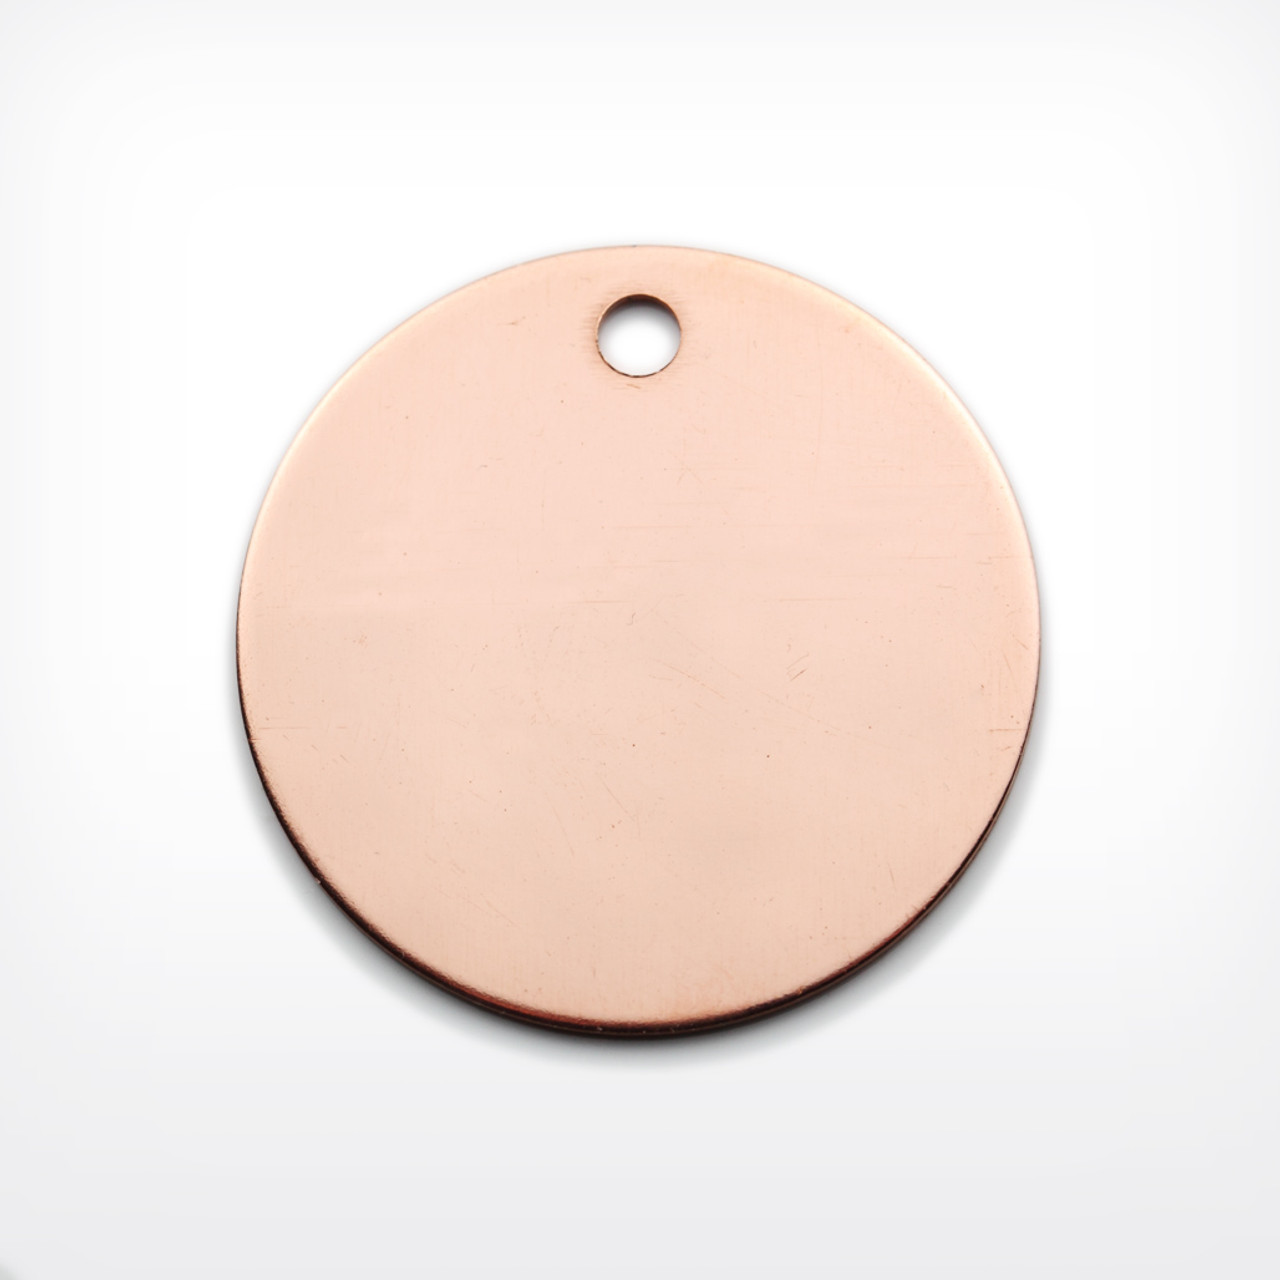 Copper Disc with 3mm piercing, 29mm, heavy gauge - Pack of 10 (637-CU)